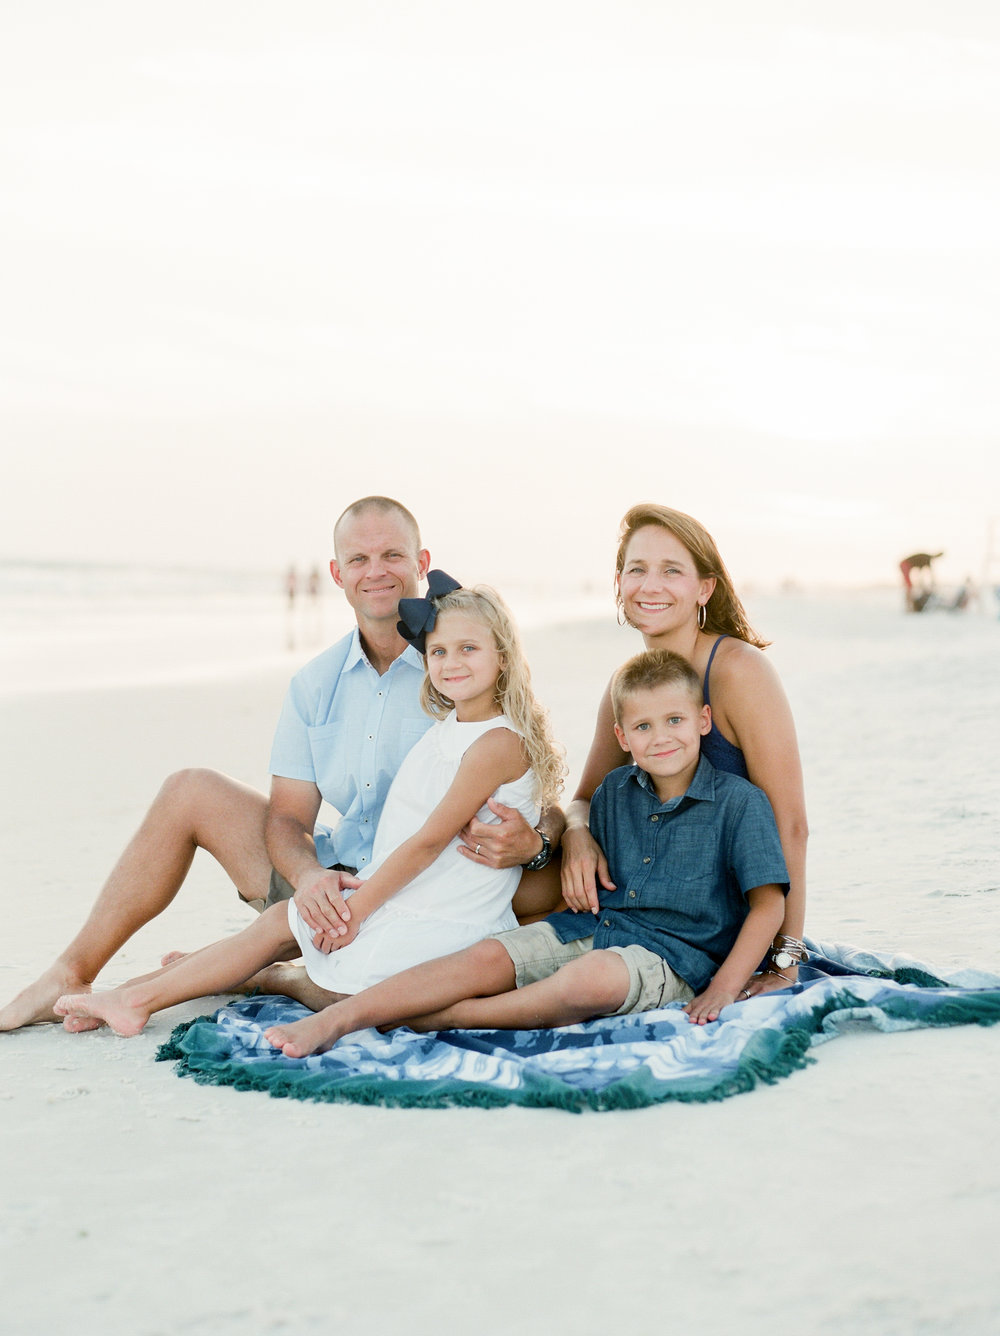 30a-film-family-photographers-kayliebpoplinphotography